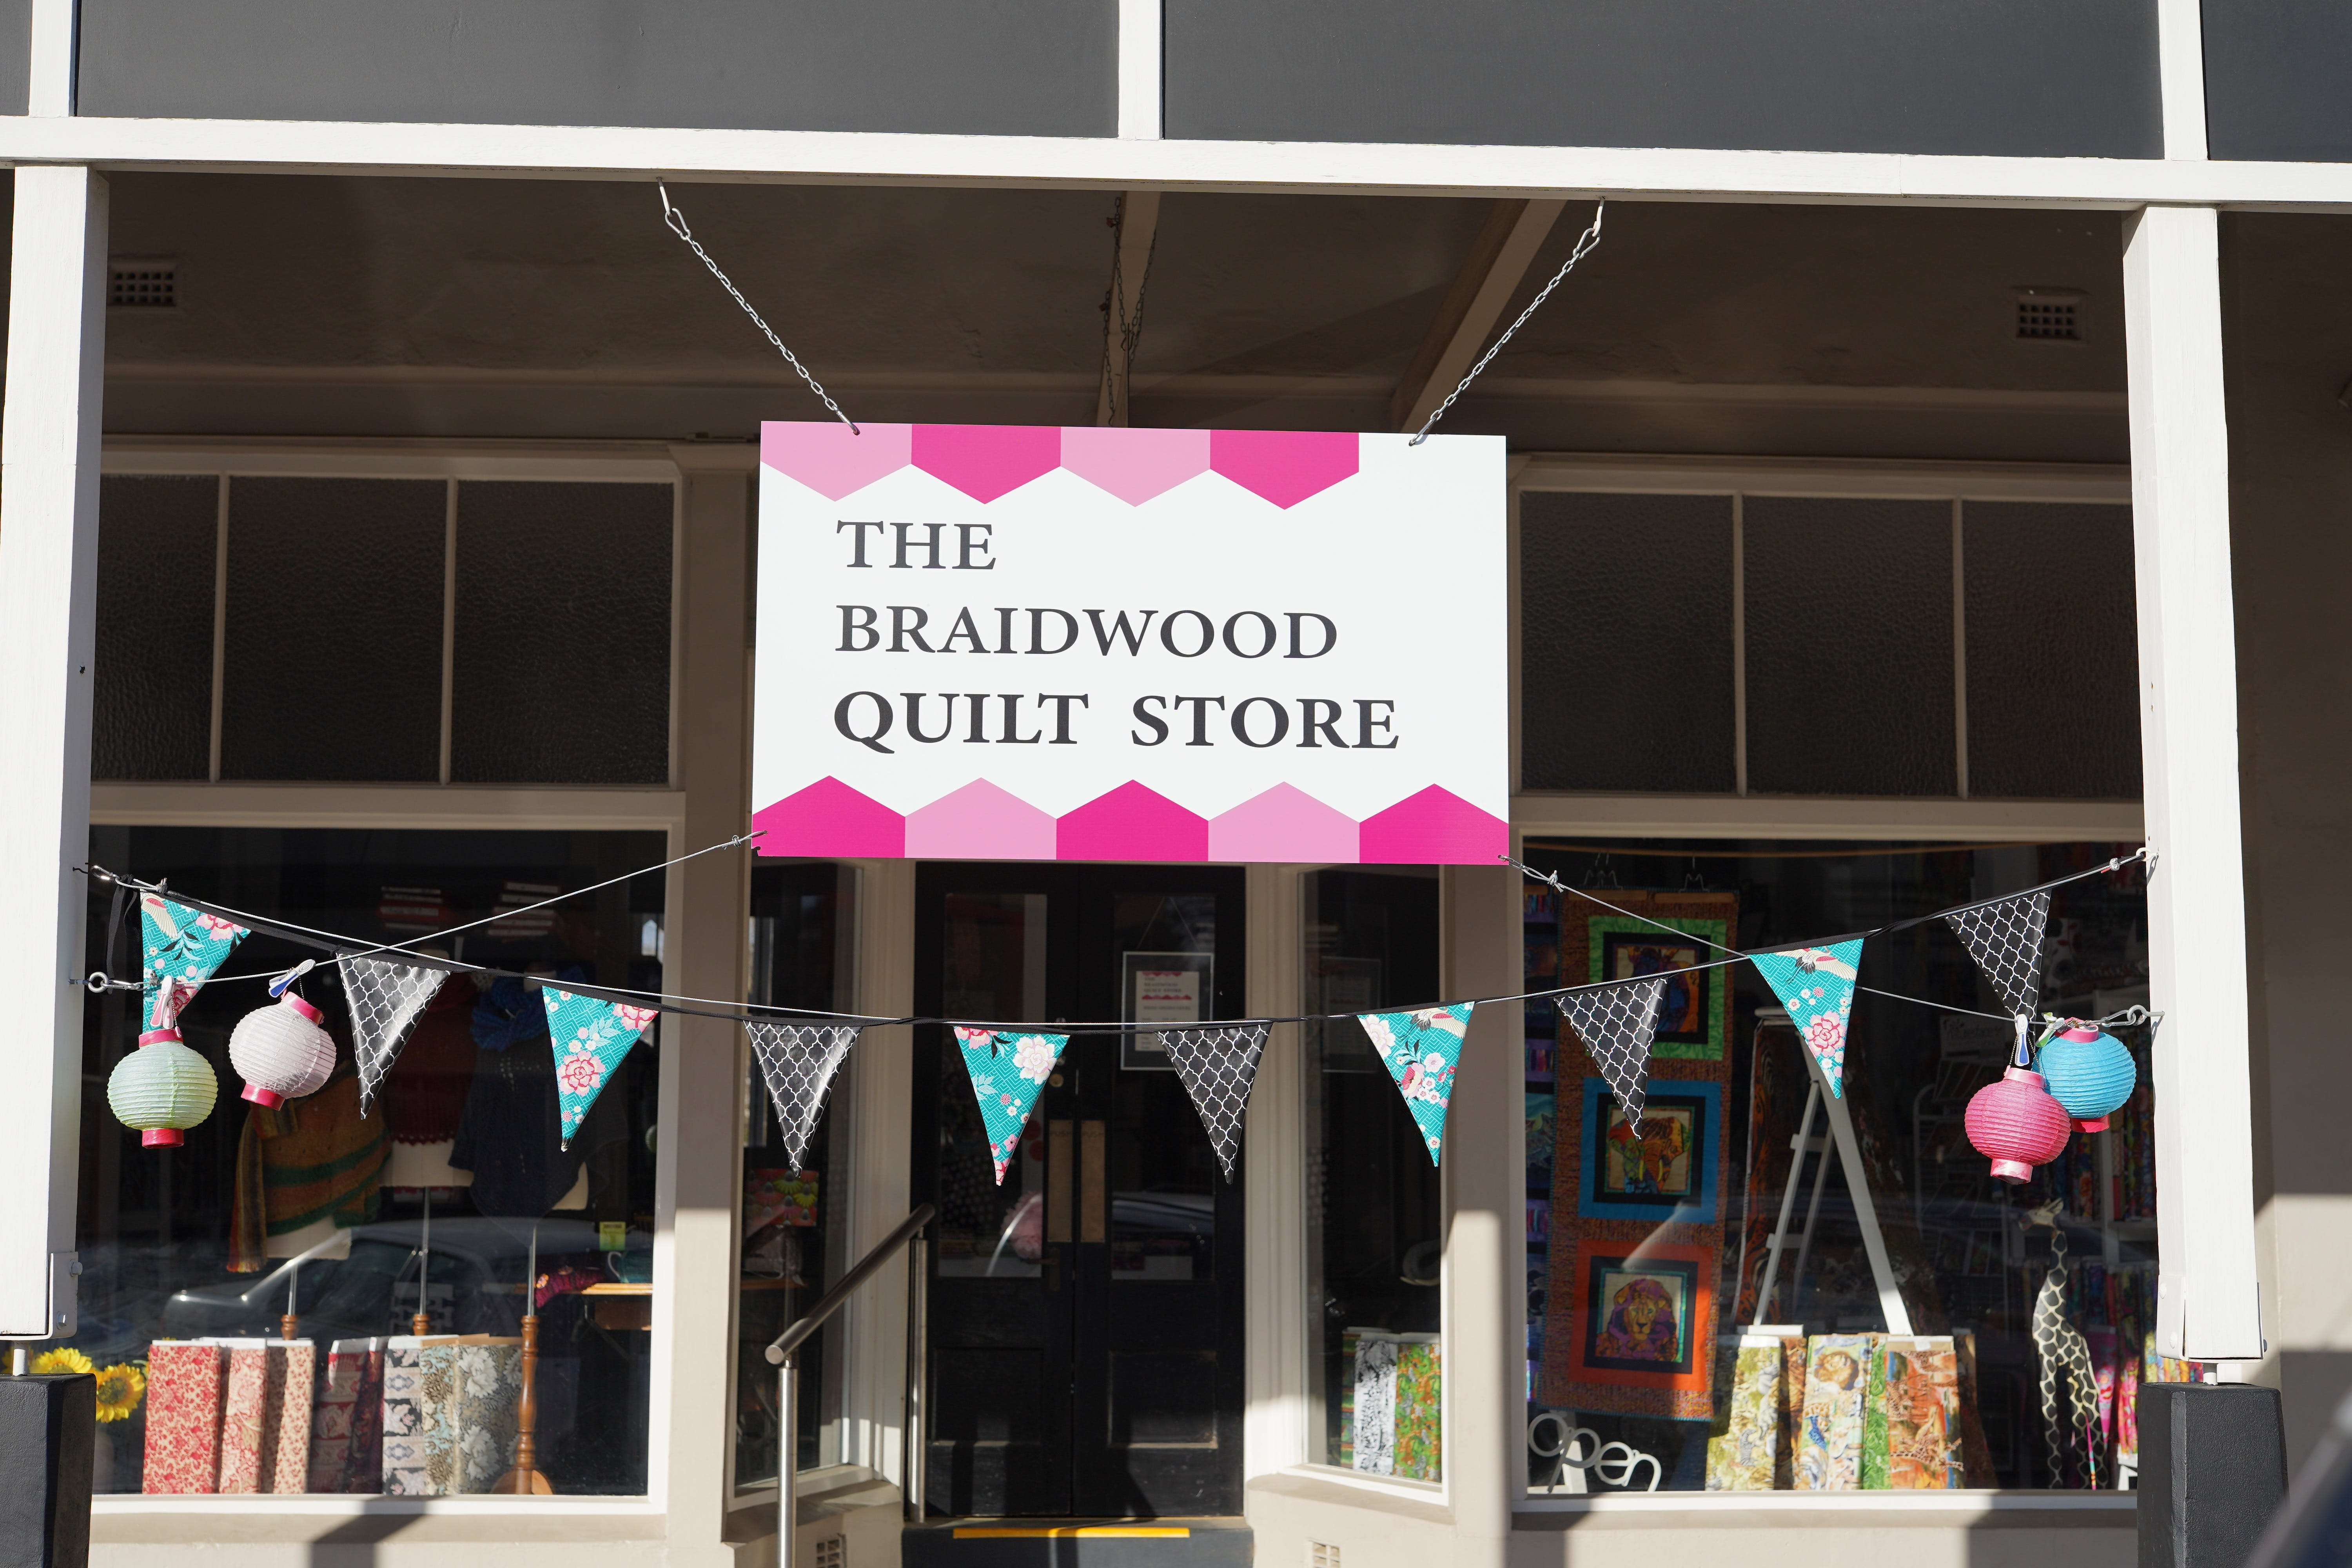 The Braidwood Quilt Store - Stayed